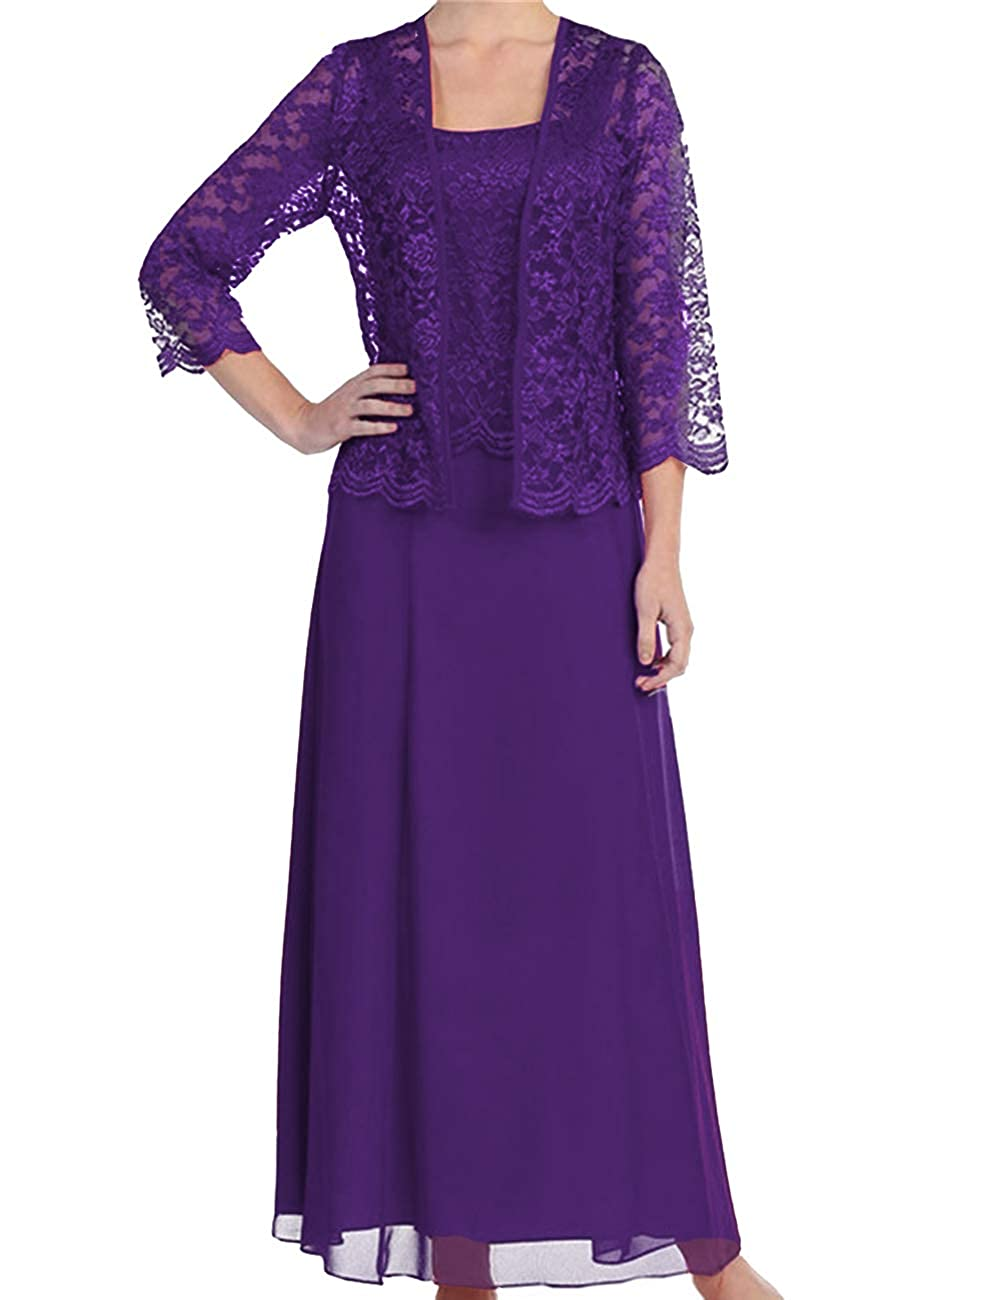 H.S.D Womens Lace Mother of The Bride Dress Formal Gowns with Jacket